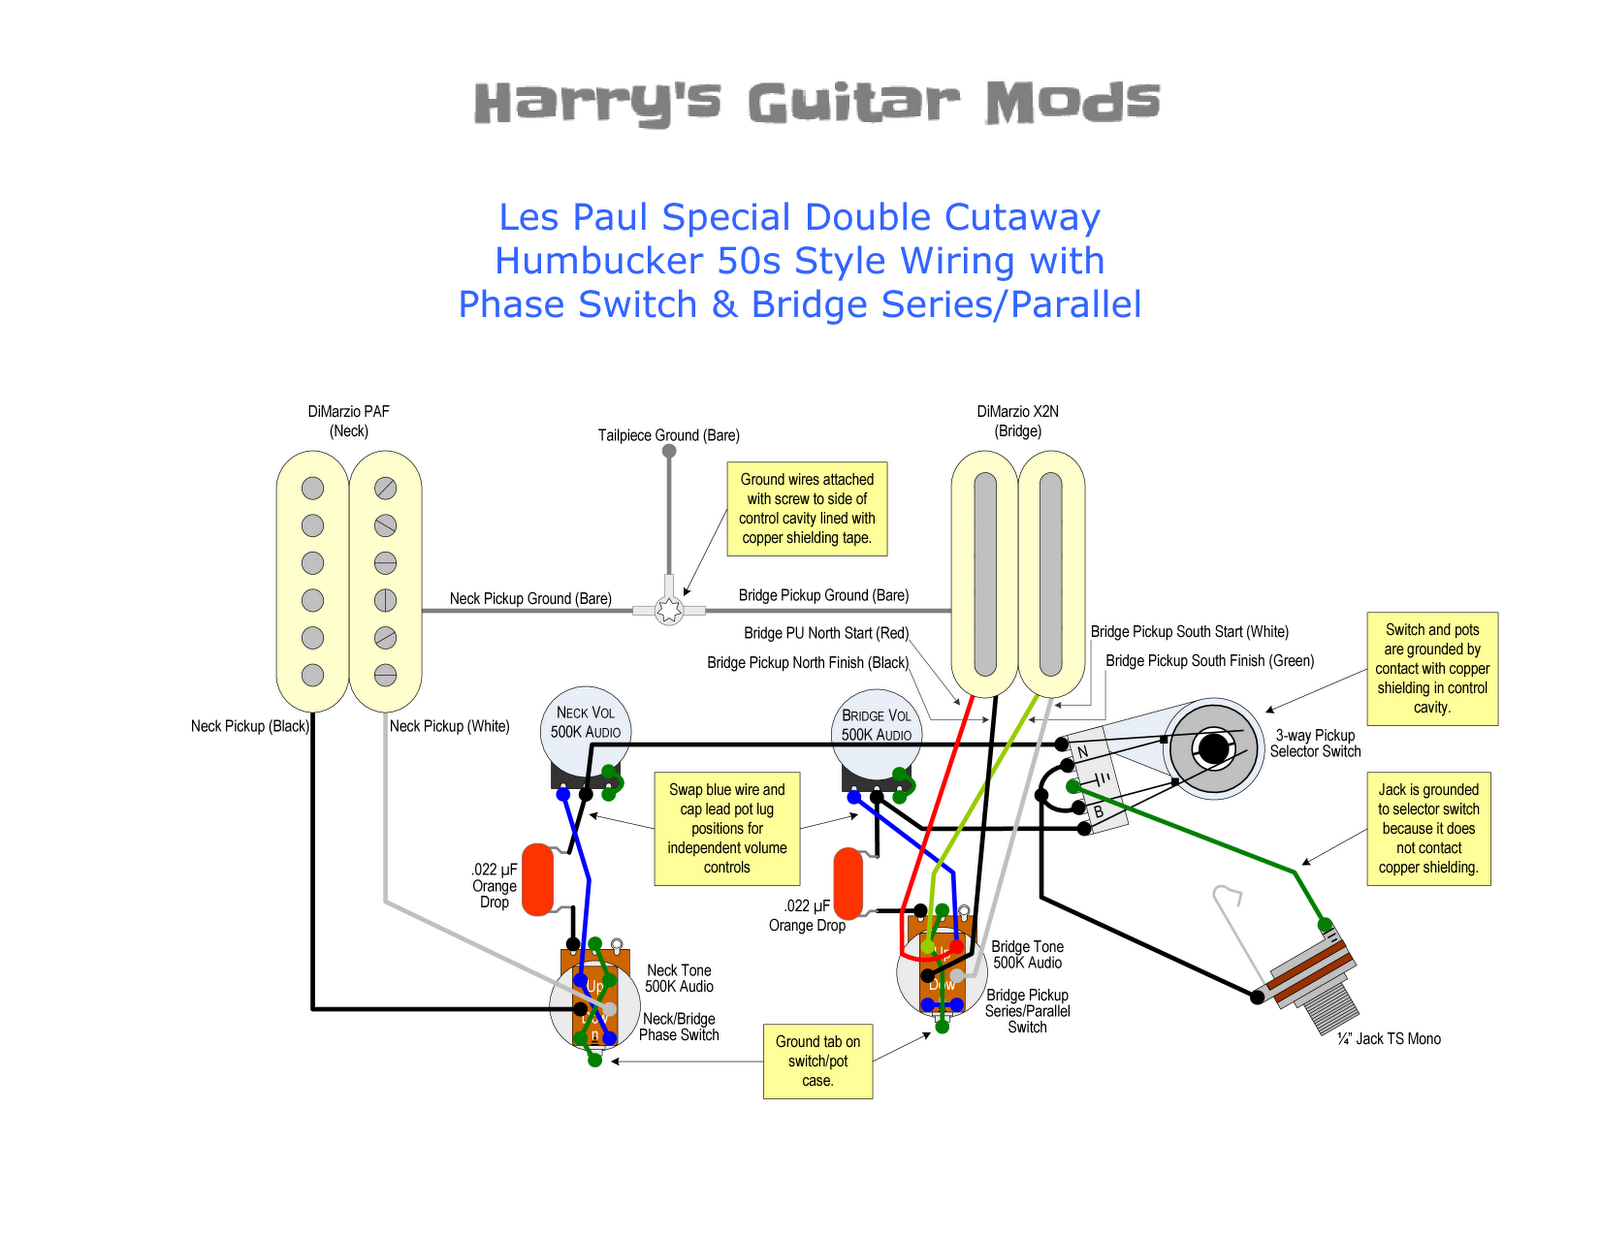 LPS+Wiring+Diagram harry's guitar mods controls wiring upgrade Les Paul Classic Wiring Diagram at eliteediting.co